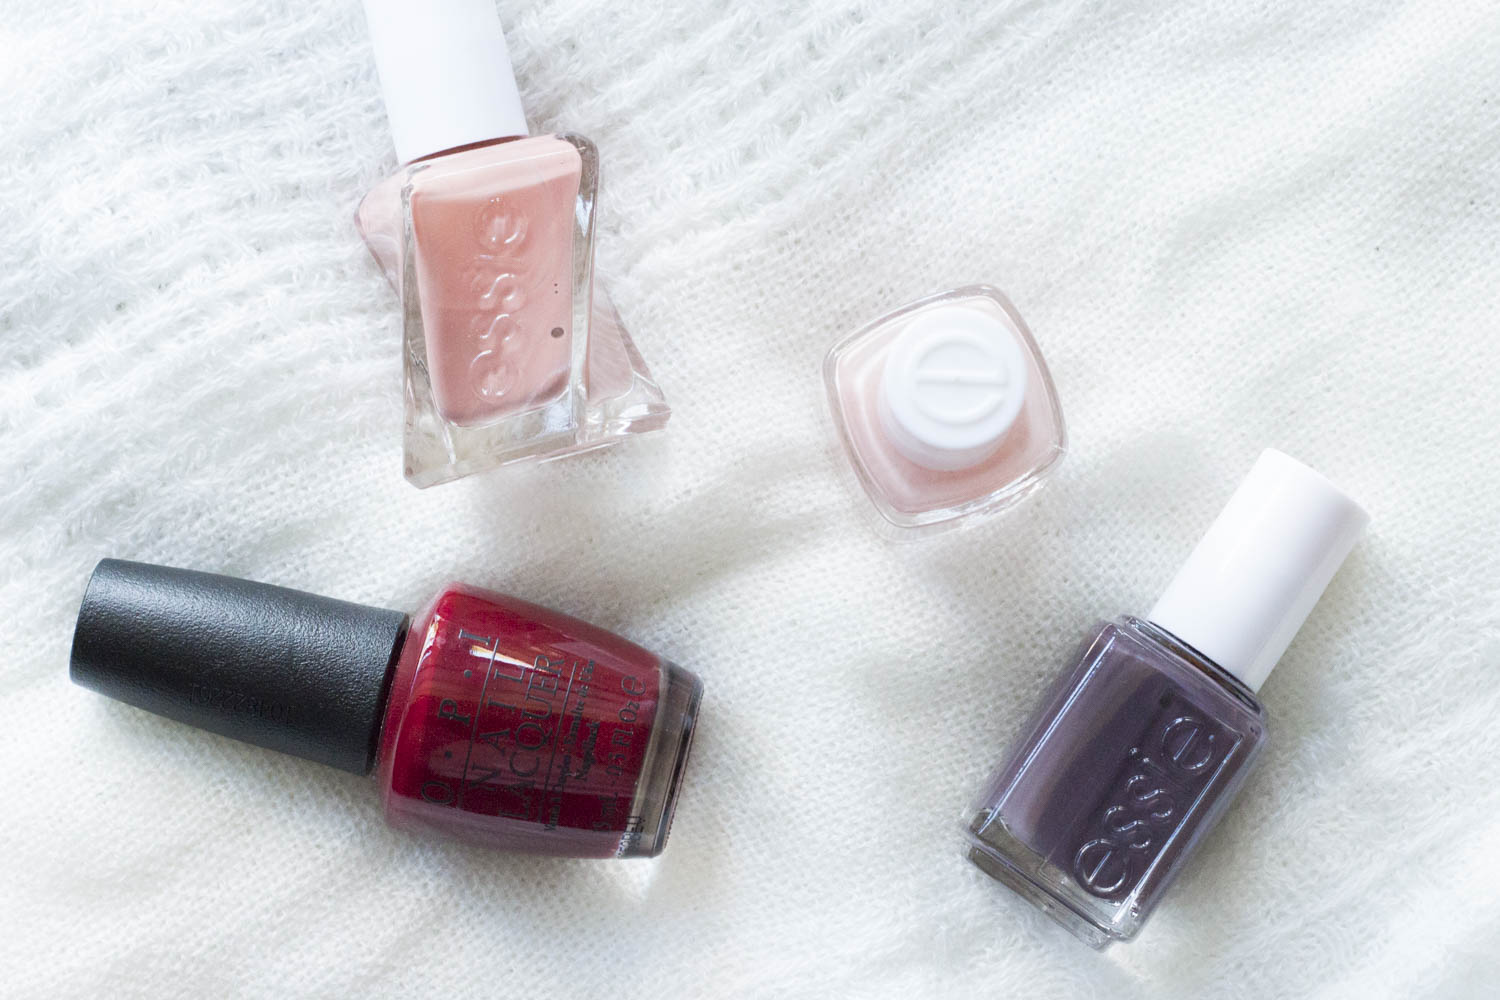 essie and opi polishes